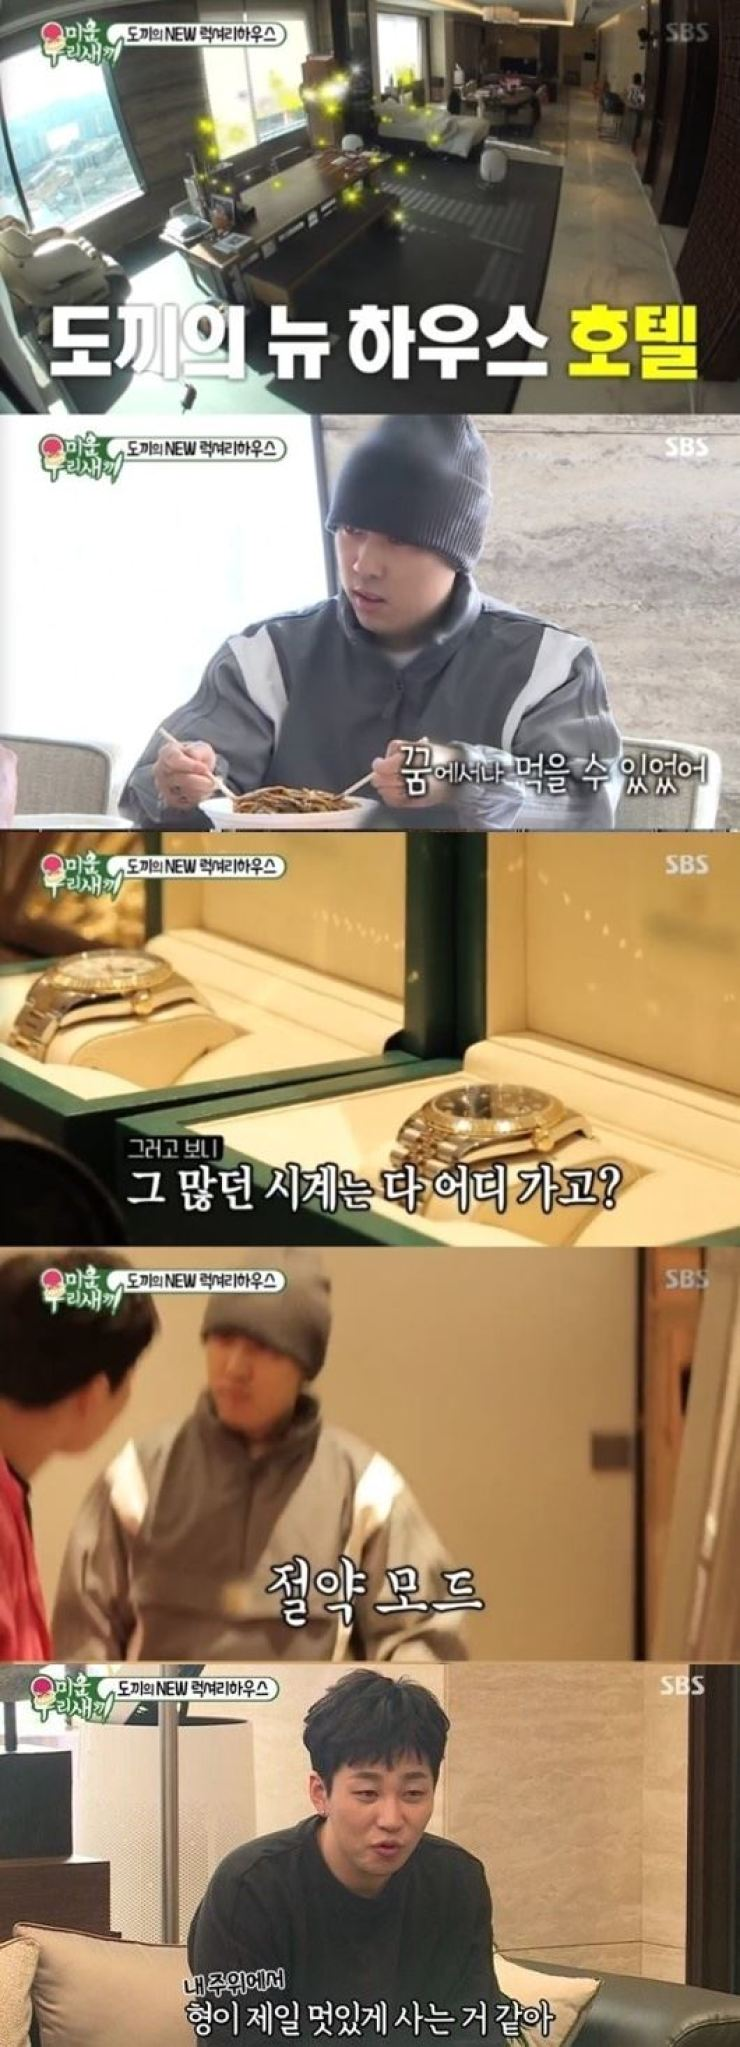 These are scenes taken from SBC TV reality show 'My little old boy' about rapper Dok2. From top are the penthouse he recently moved in; his eating simple Chinese food; his gold watches; his talking about his recent Spartan lifestyle and follow rapper Din Din envying Dok2 superrich life.